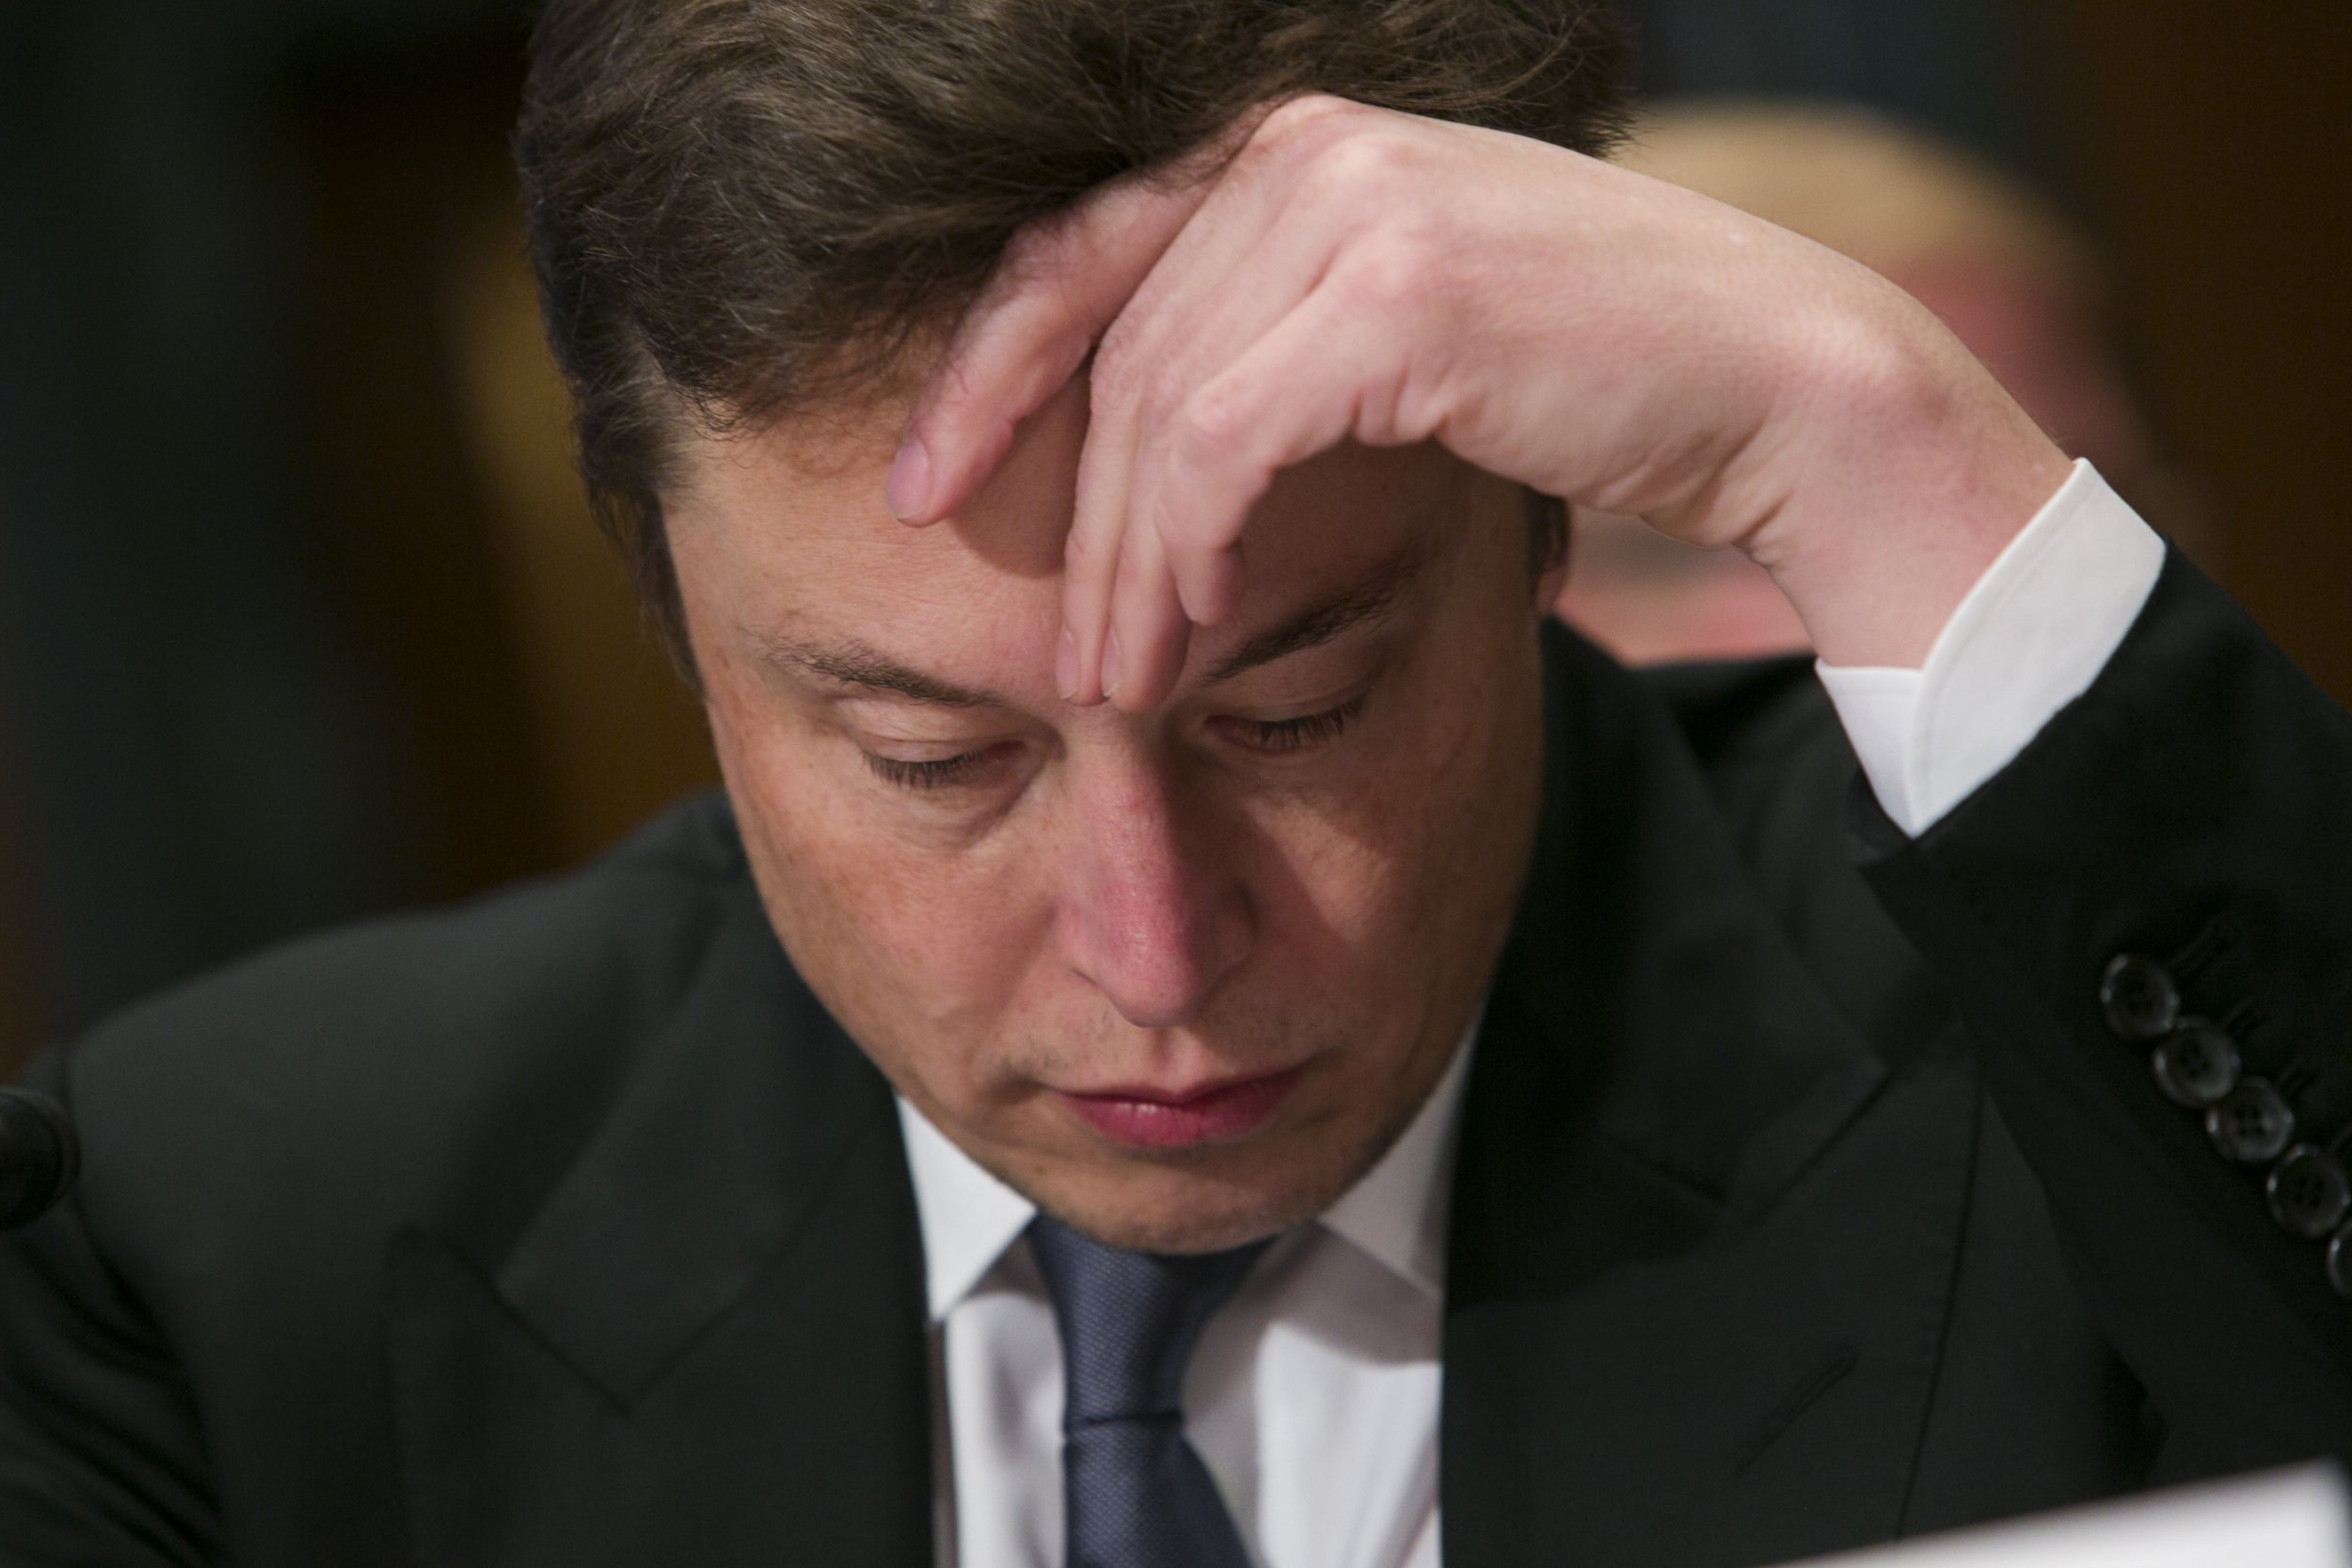 Elon Musk is about to find out how much trouble his tweets have landed him in